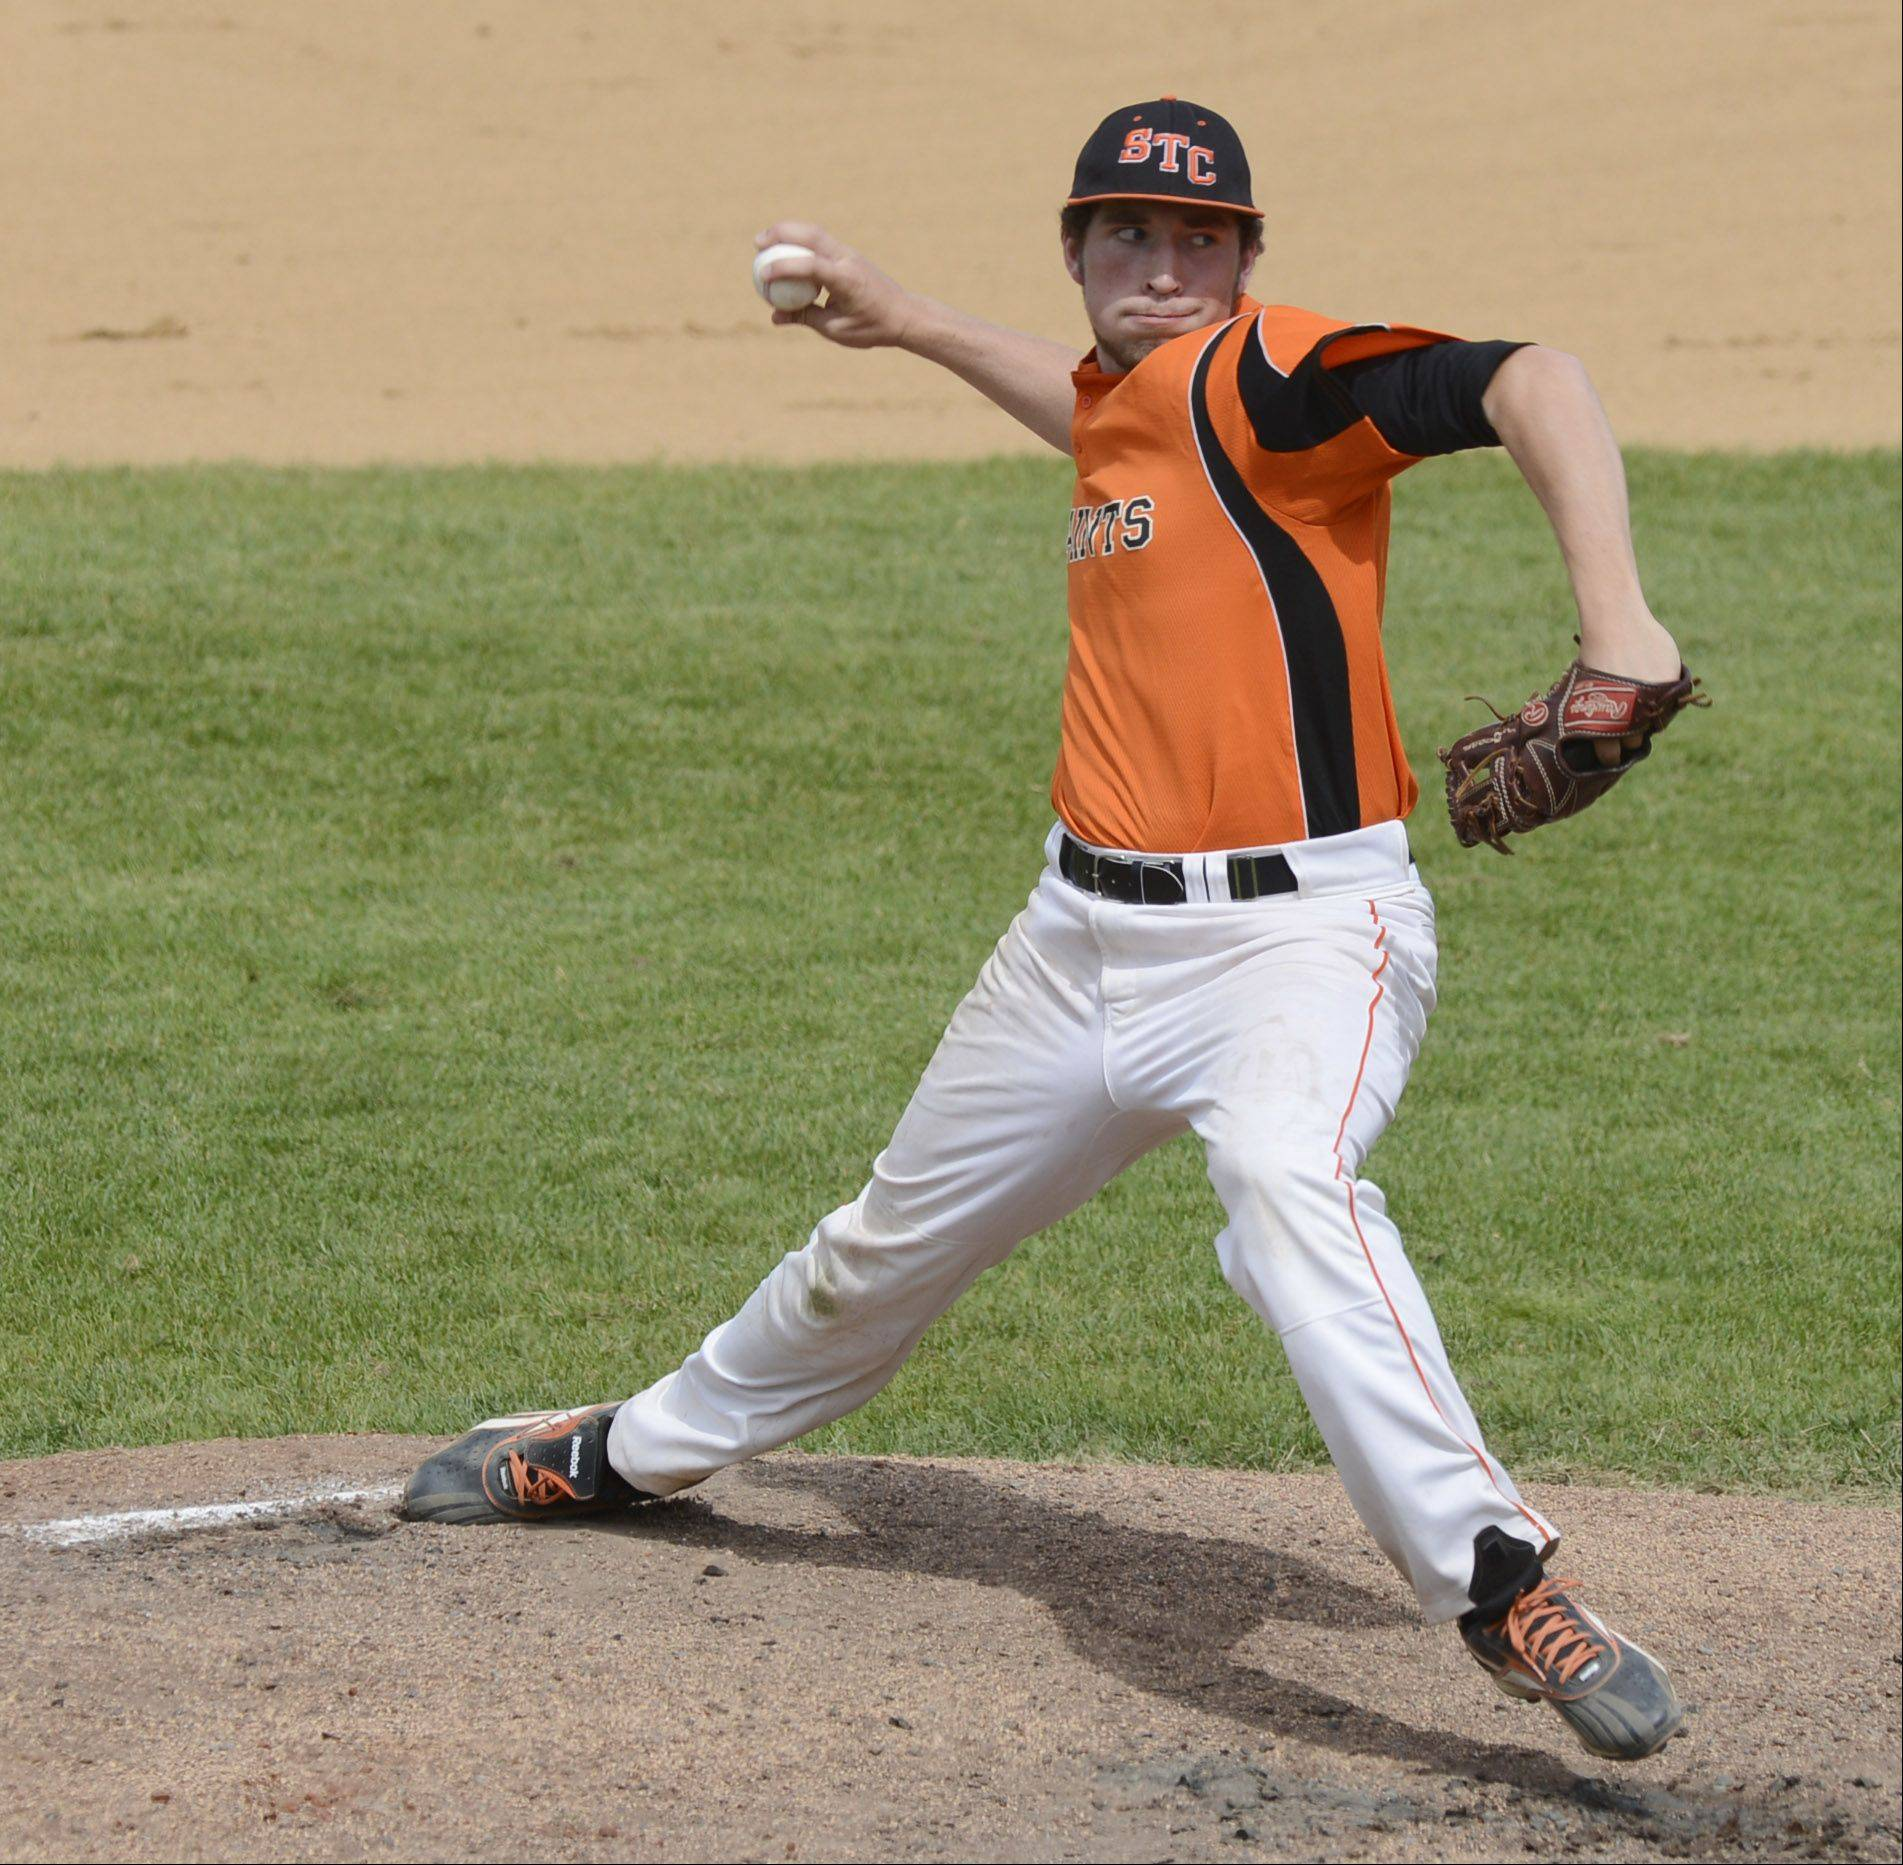 St. Charles East's Matt Starai delivers a pitch during the Class 4A state baseball third-place game Saturday against Neuqua Valley at Silver Cross Field in Joliet.